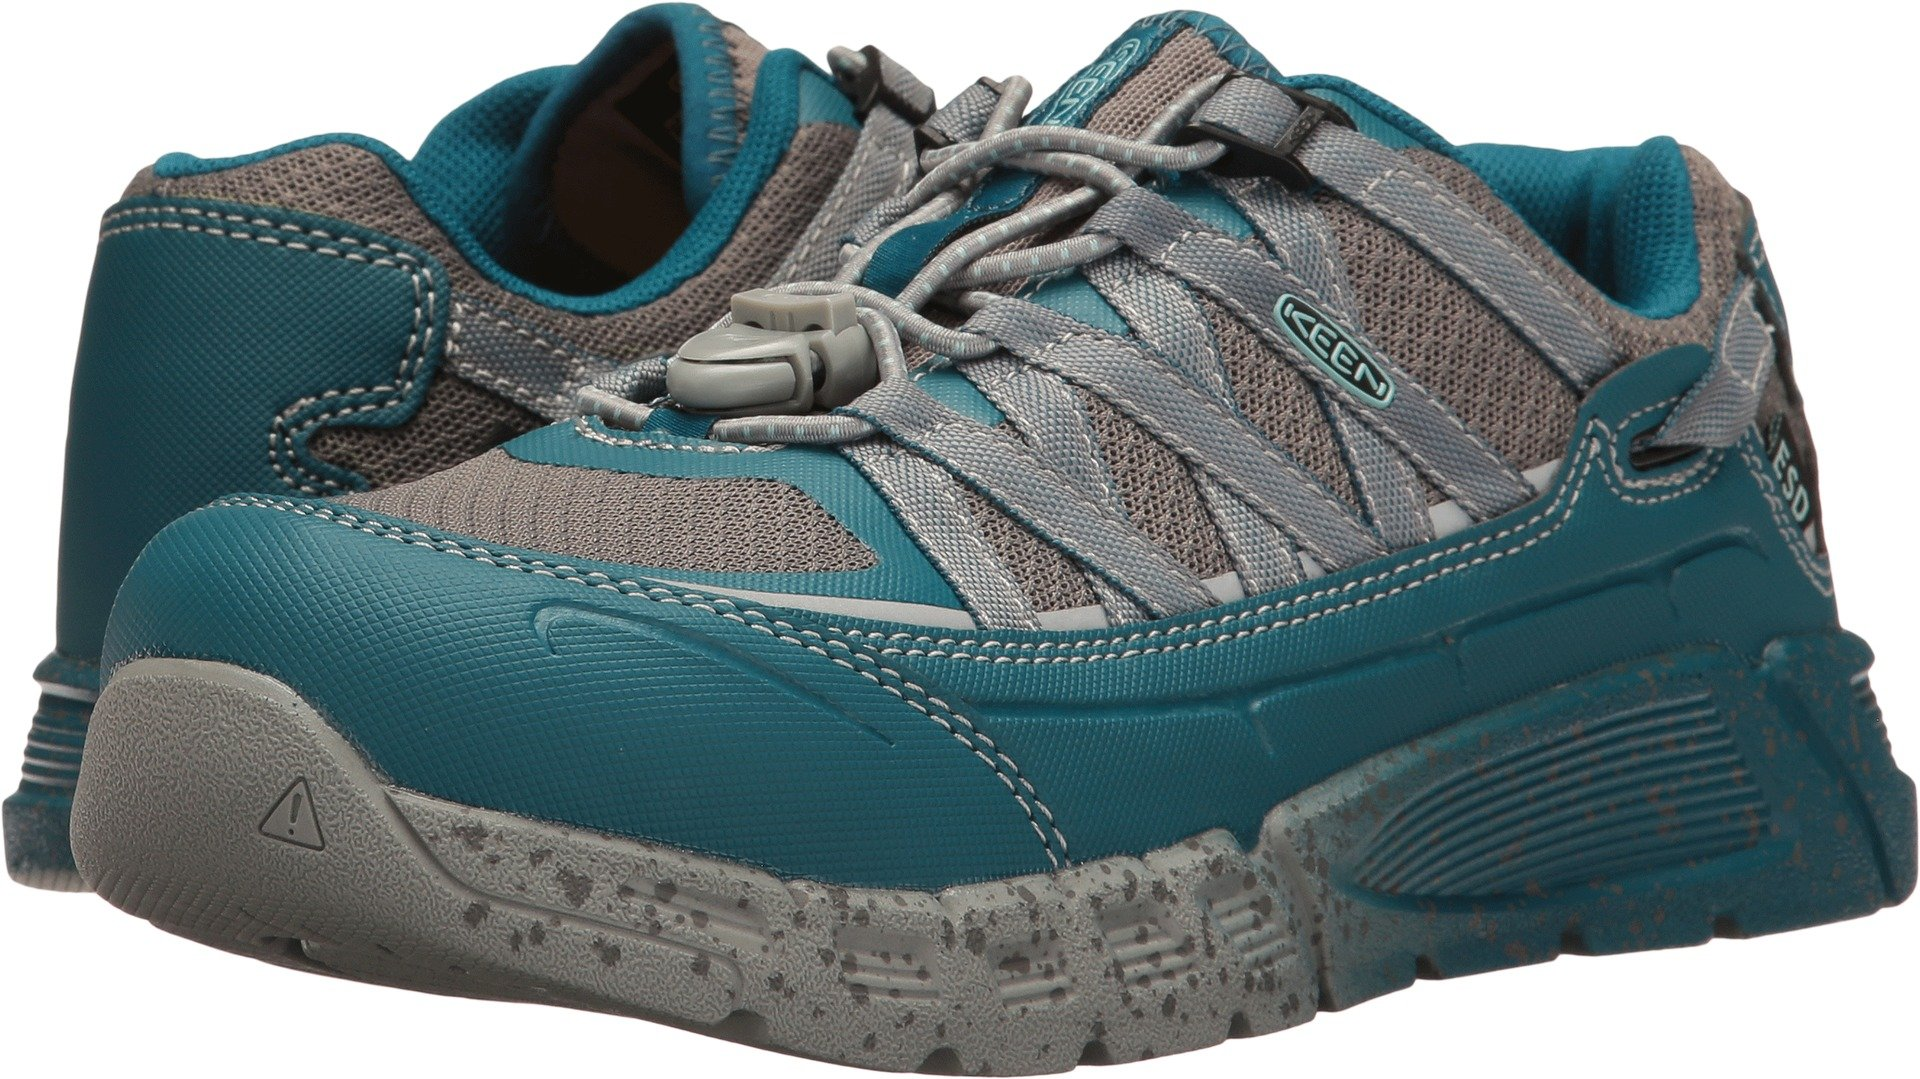 KEEN Utility Women's Asheville at ESD Industrial and Construction Shoe, Ink Blue/Eggshell Blue, 7.5 M US